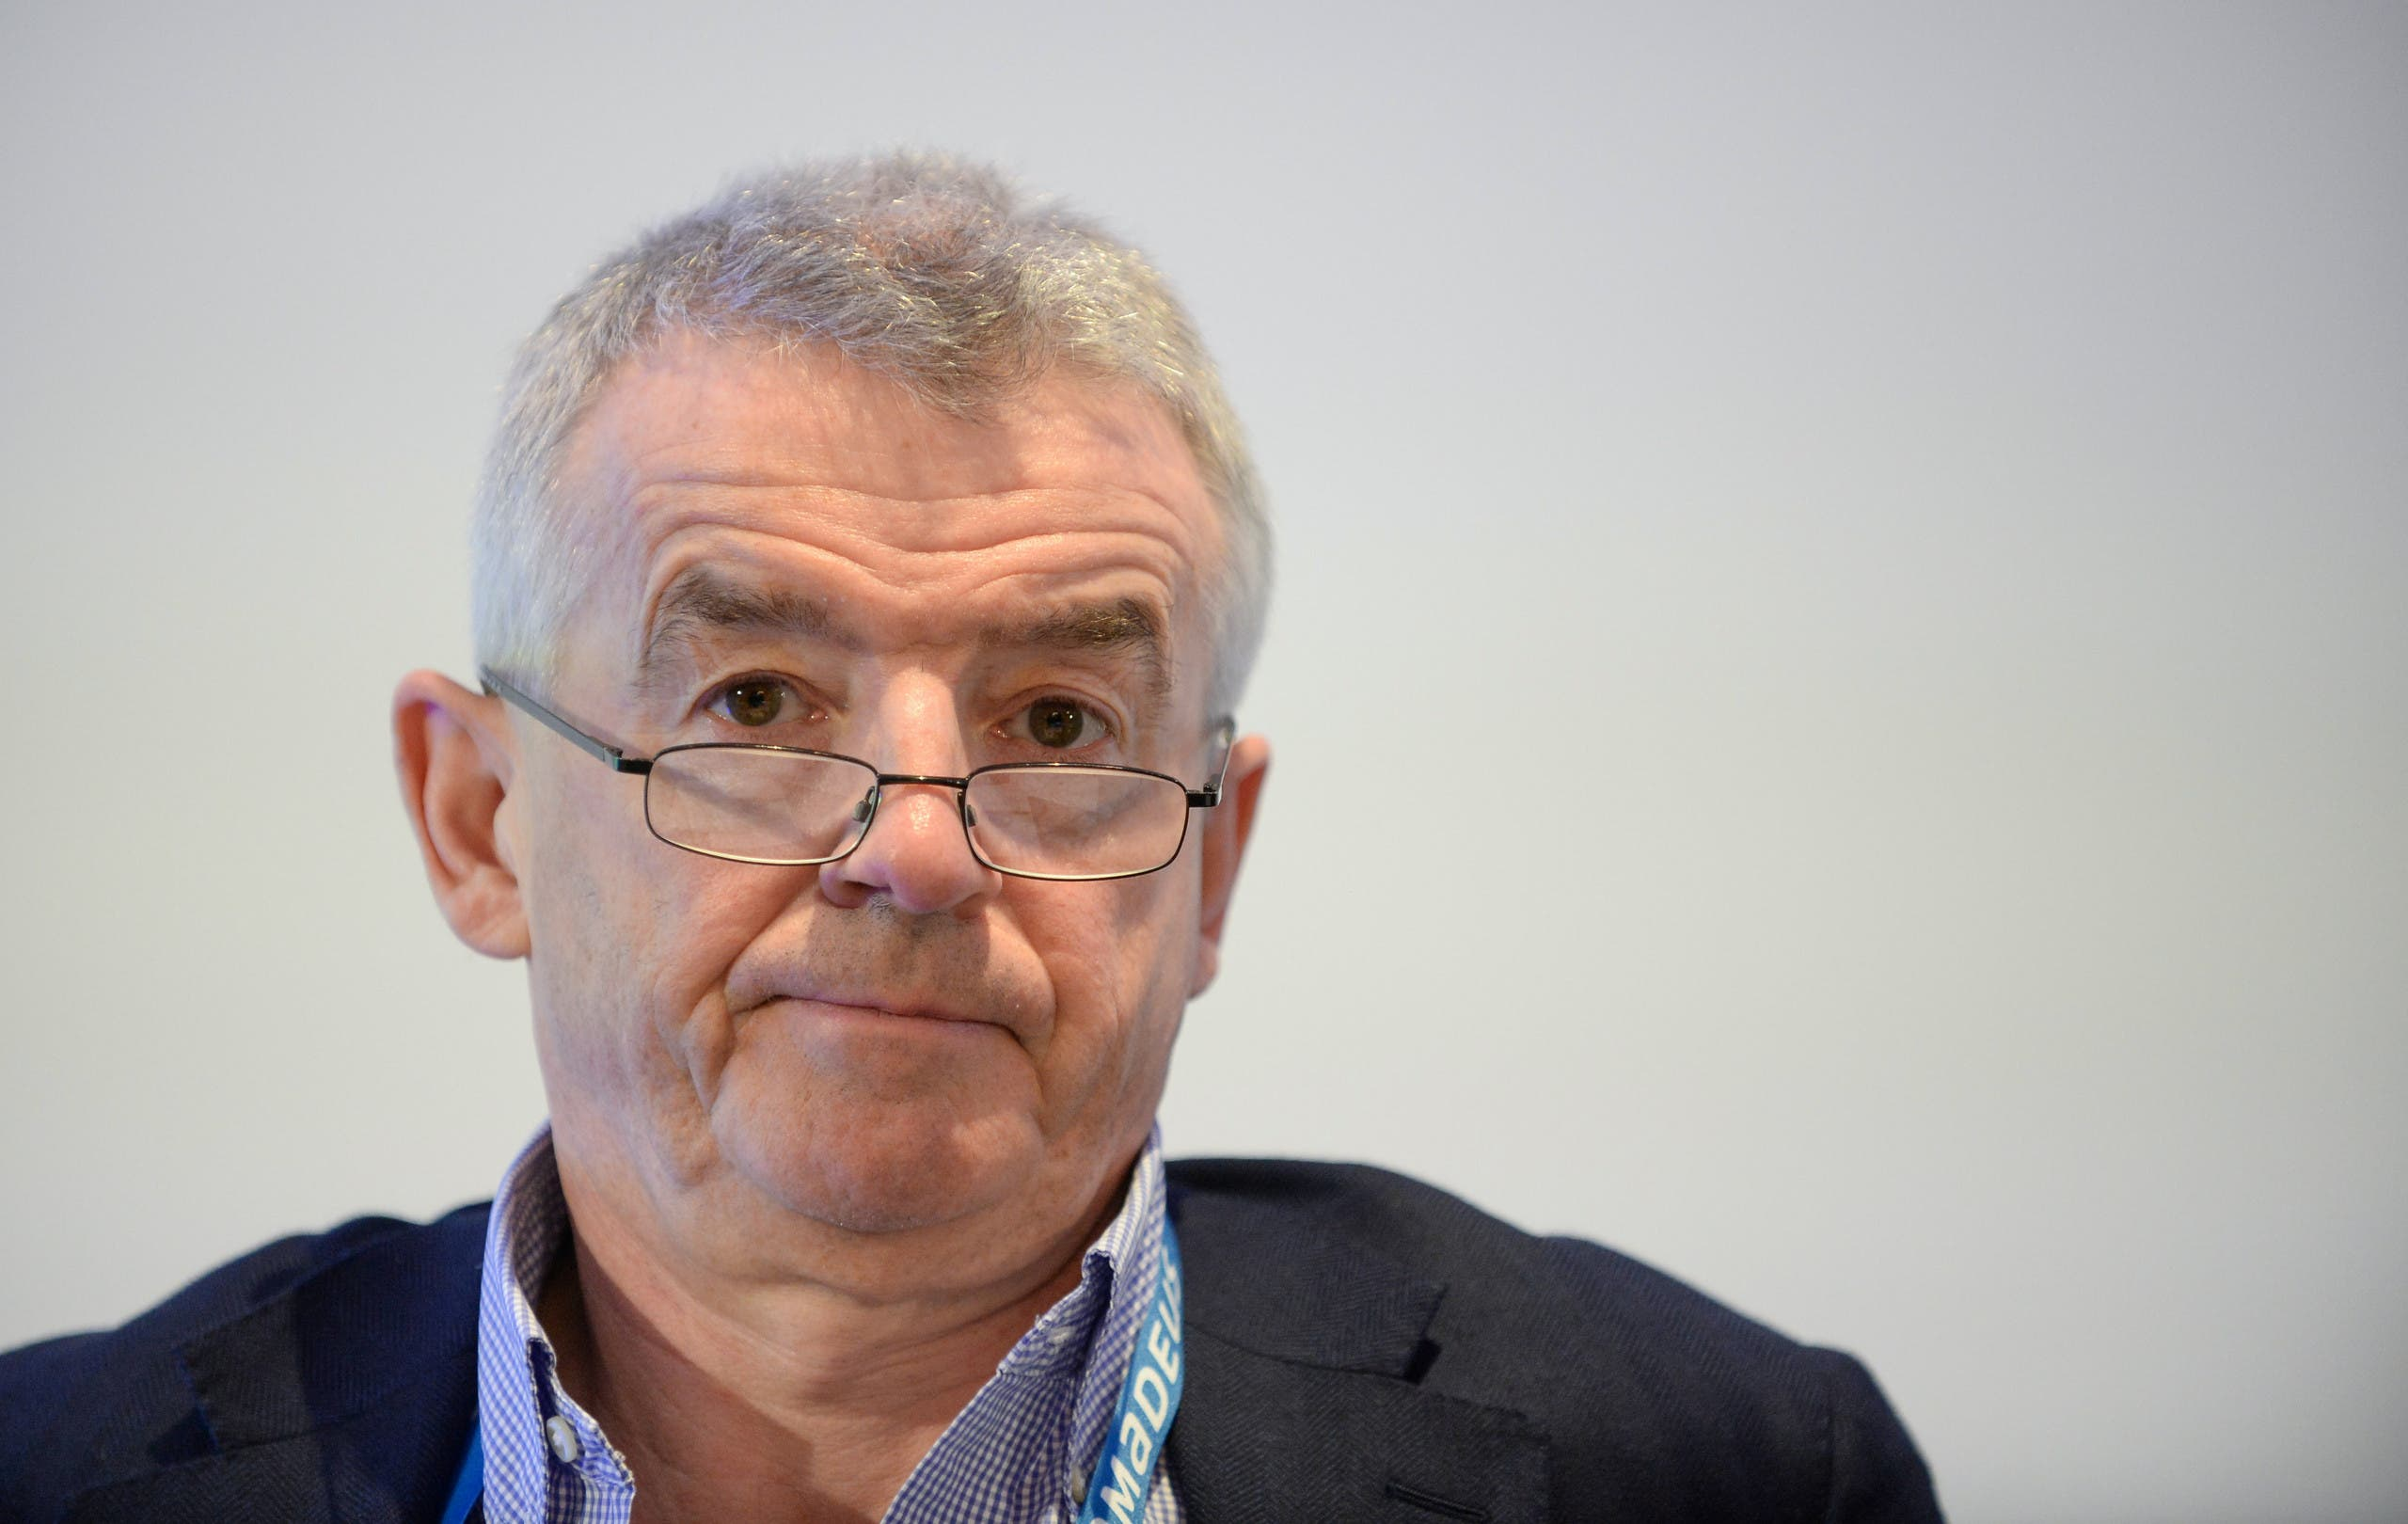 Ryainair boss Michael O'Leary attends an aviation summit in Brussels, March, 2020. (Reuters)